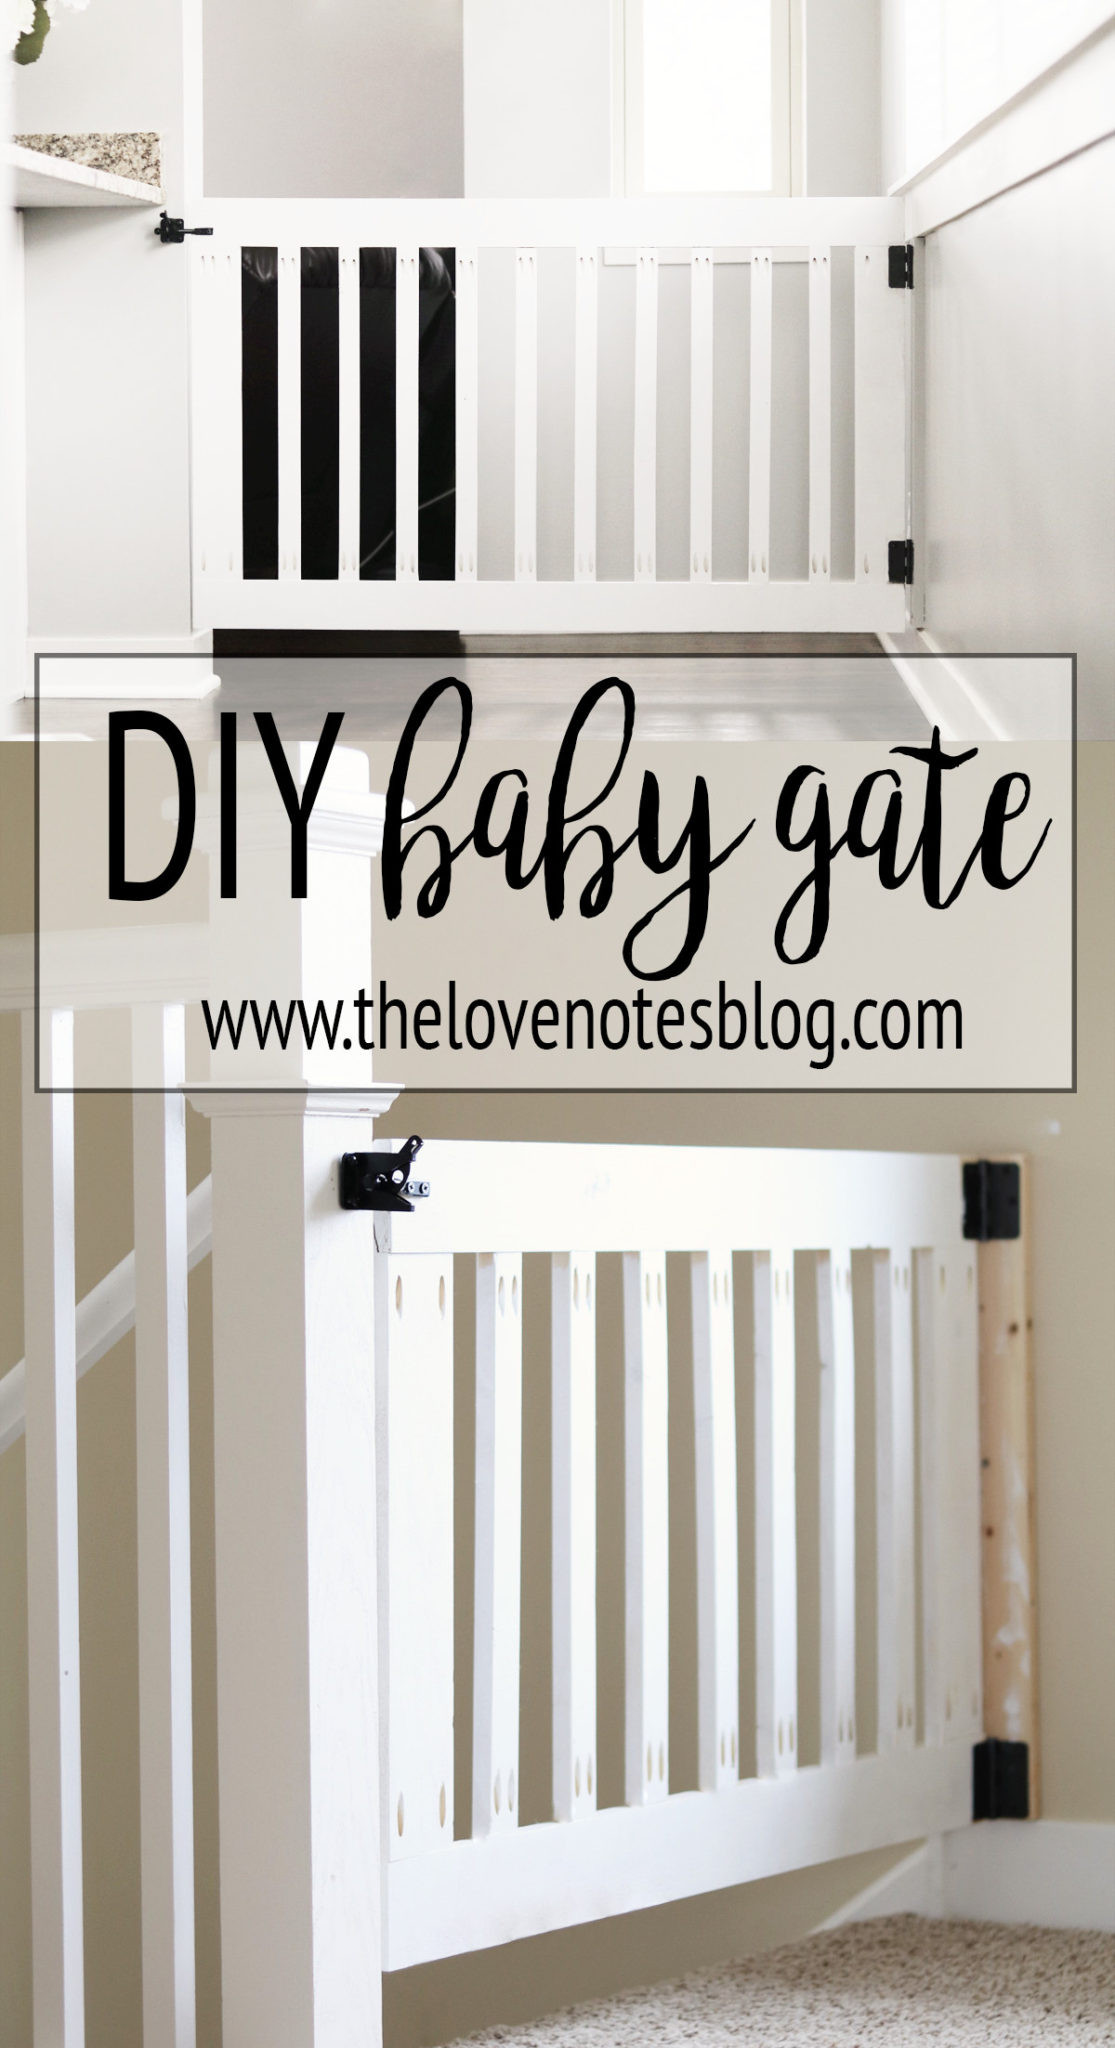 DIY Wood Baby Gate  Custom Wooden DIY Baby Gate for Stairs and Hallways